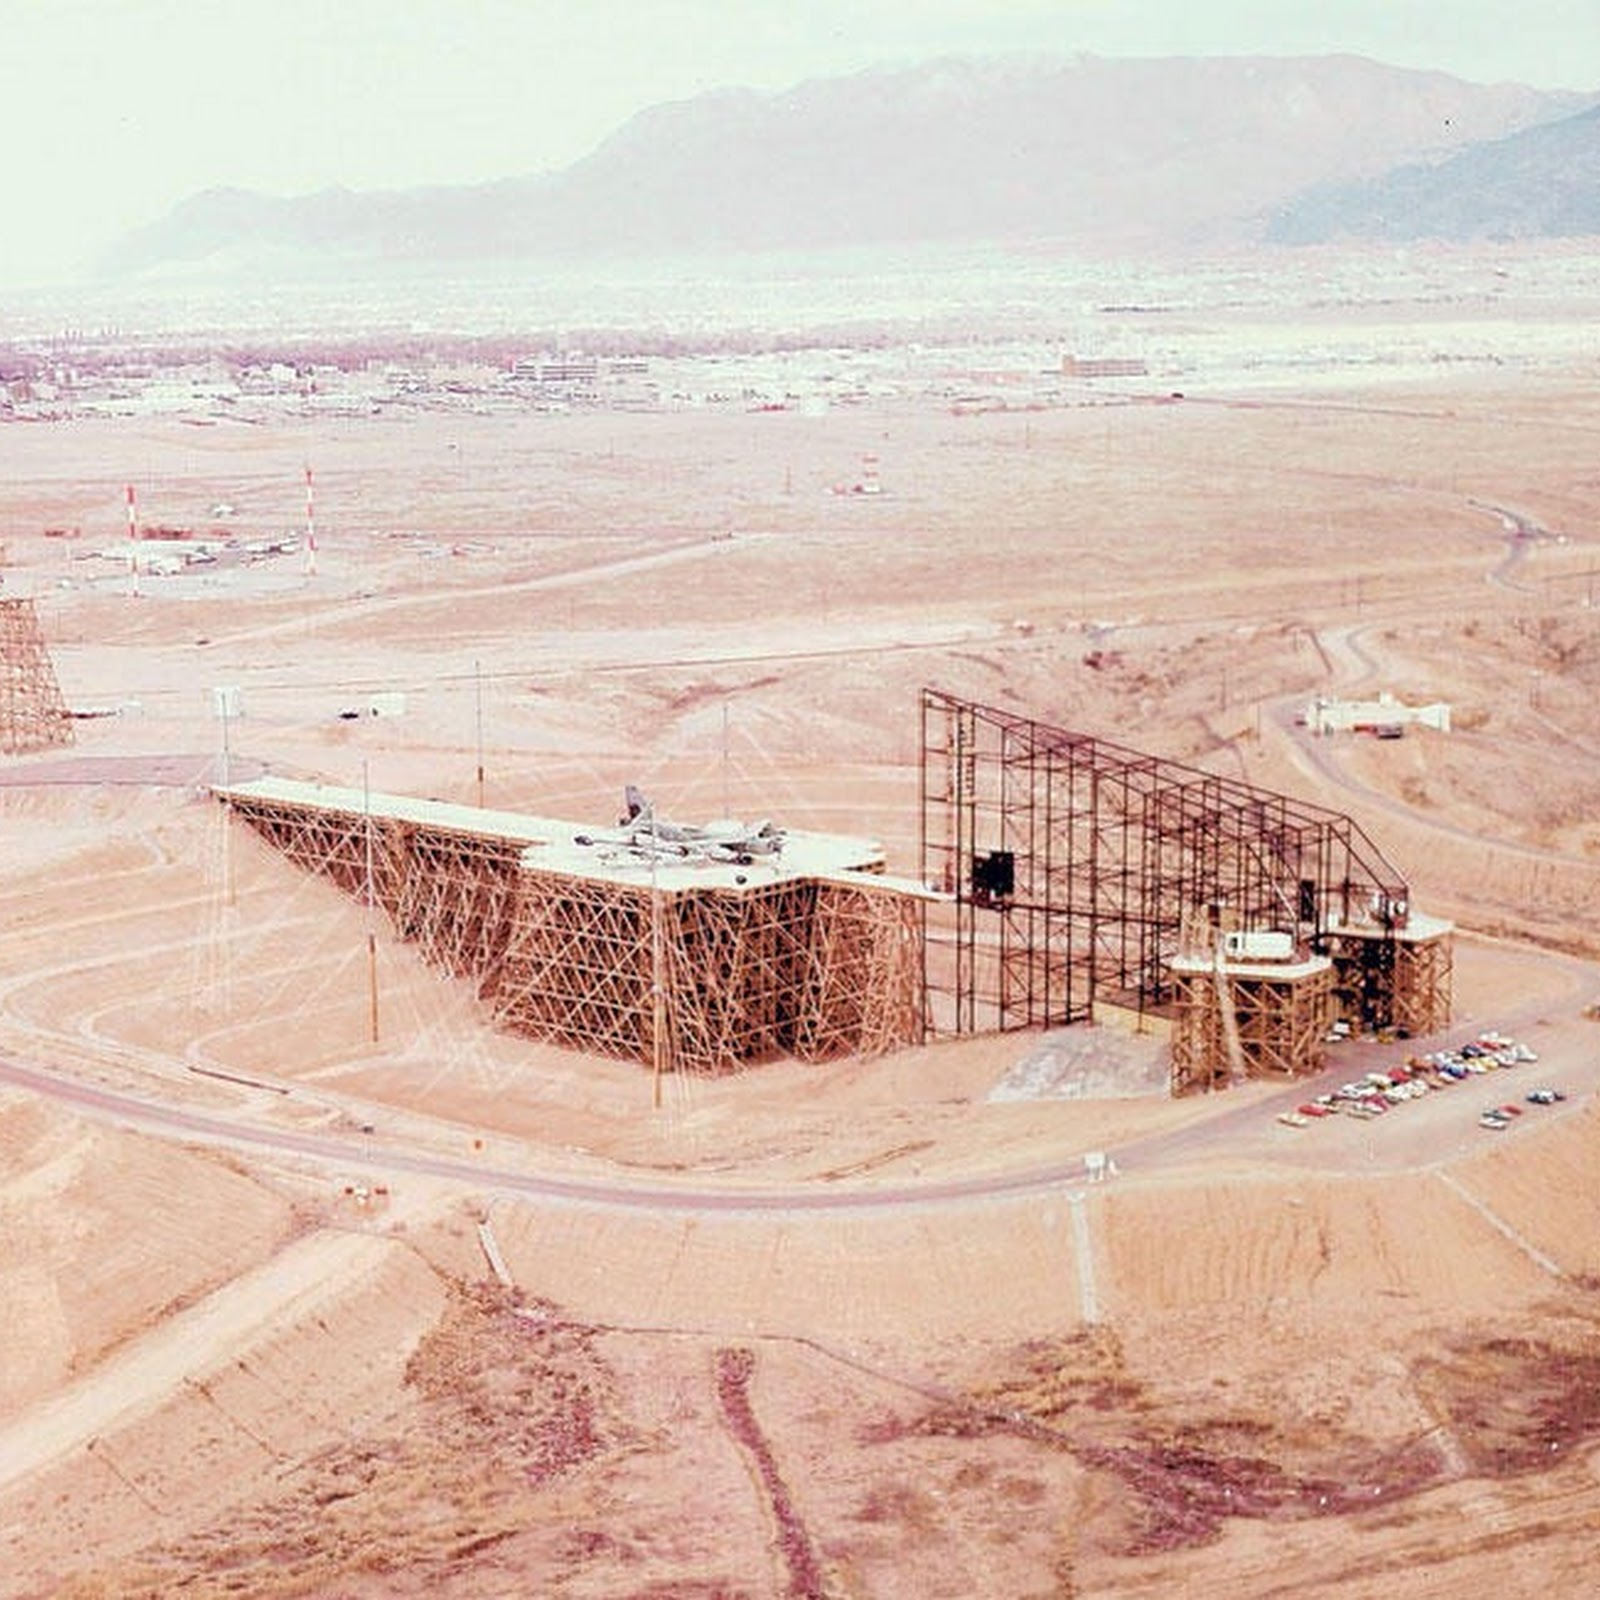 ATLAS-I: The Cold War-Era Facility That Tested The Effects of EMP on Military Aircraft